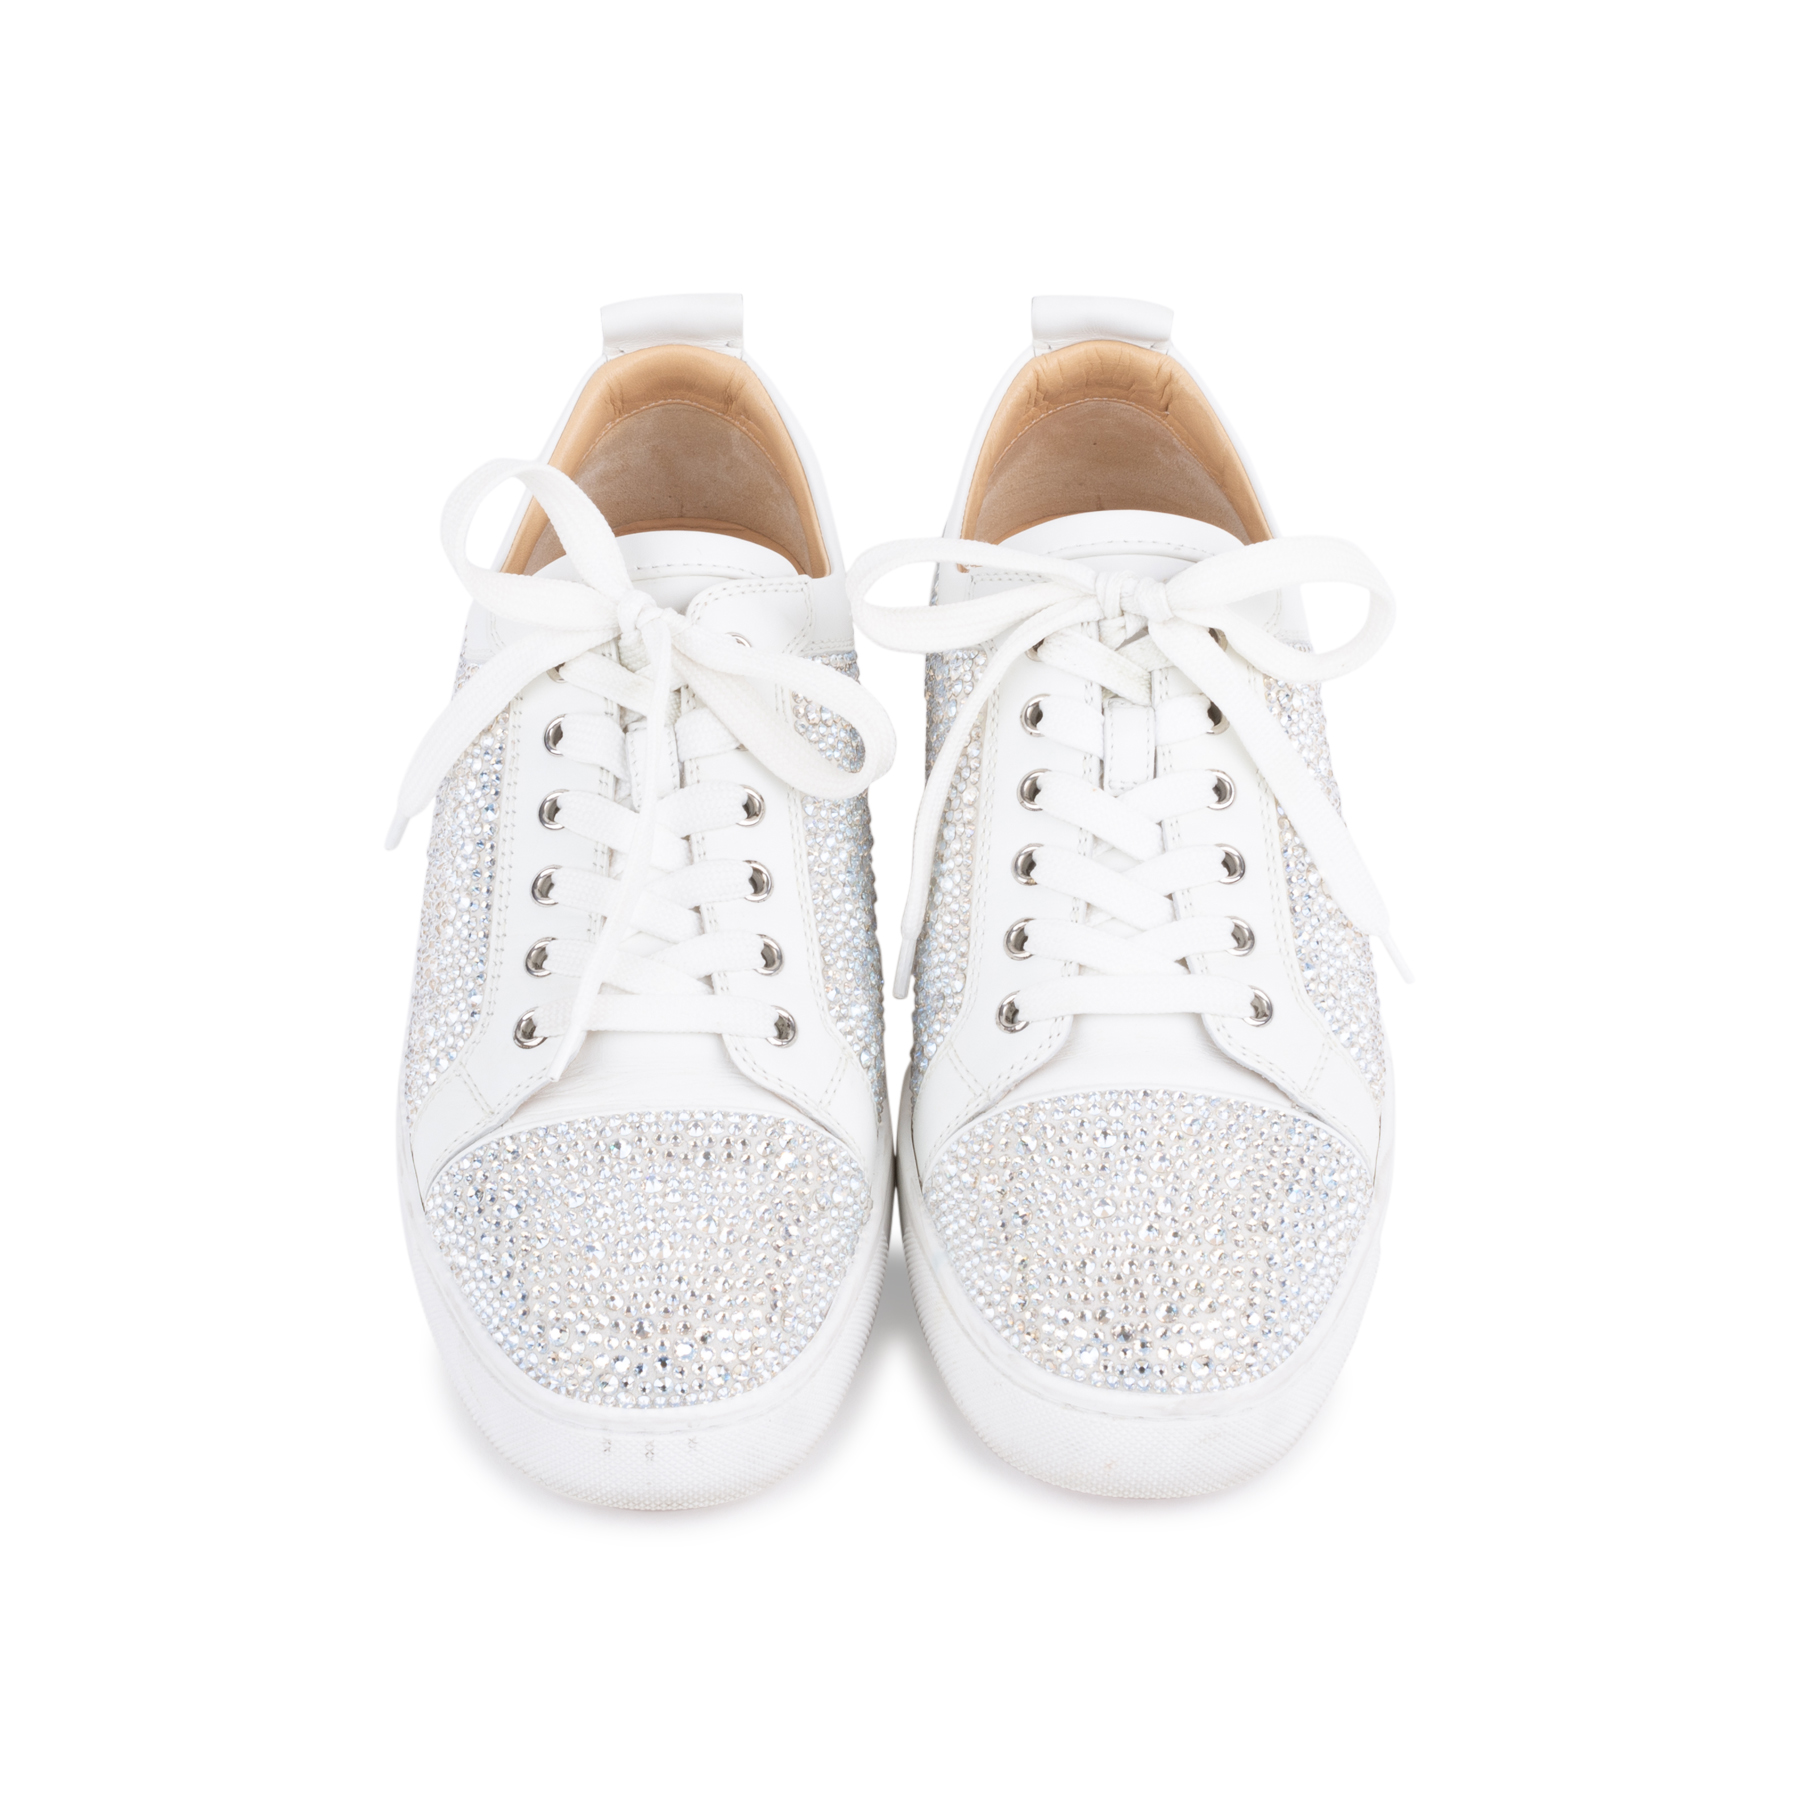 c60bdab0df8d Authentic Second Hand Christian Louboutin Louis Junior Strass Leather  Sneakers (PSS-601-00003)